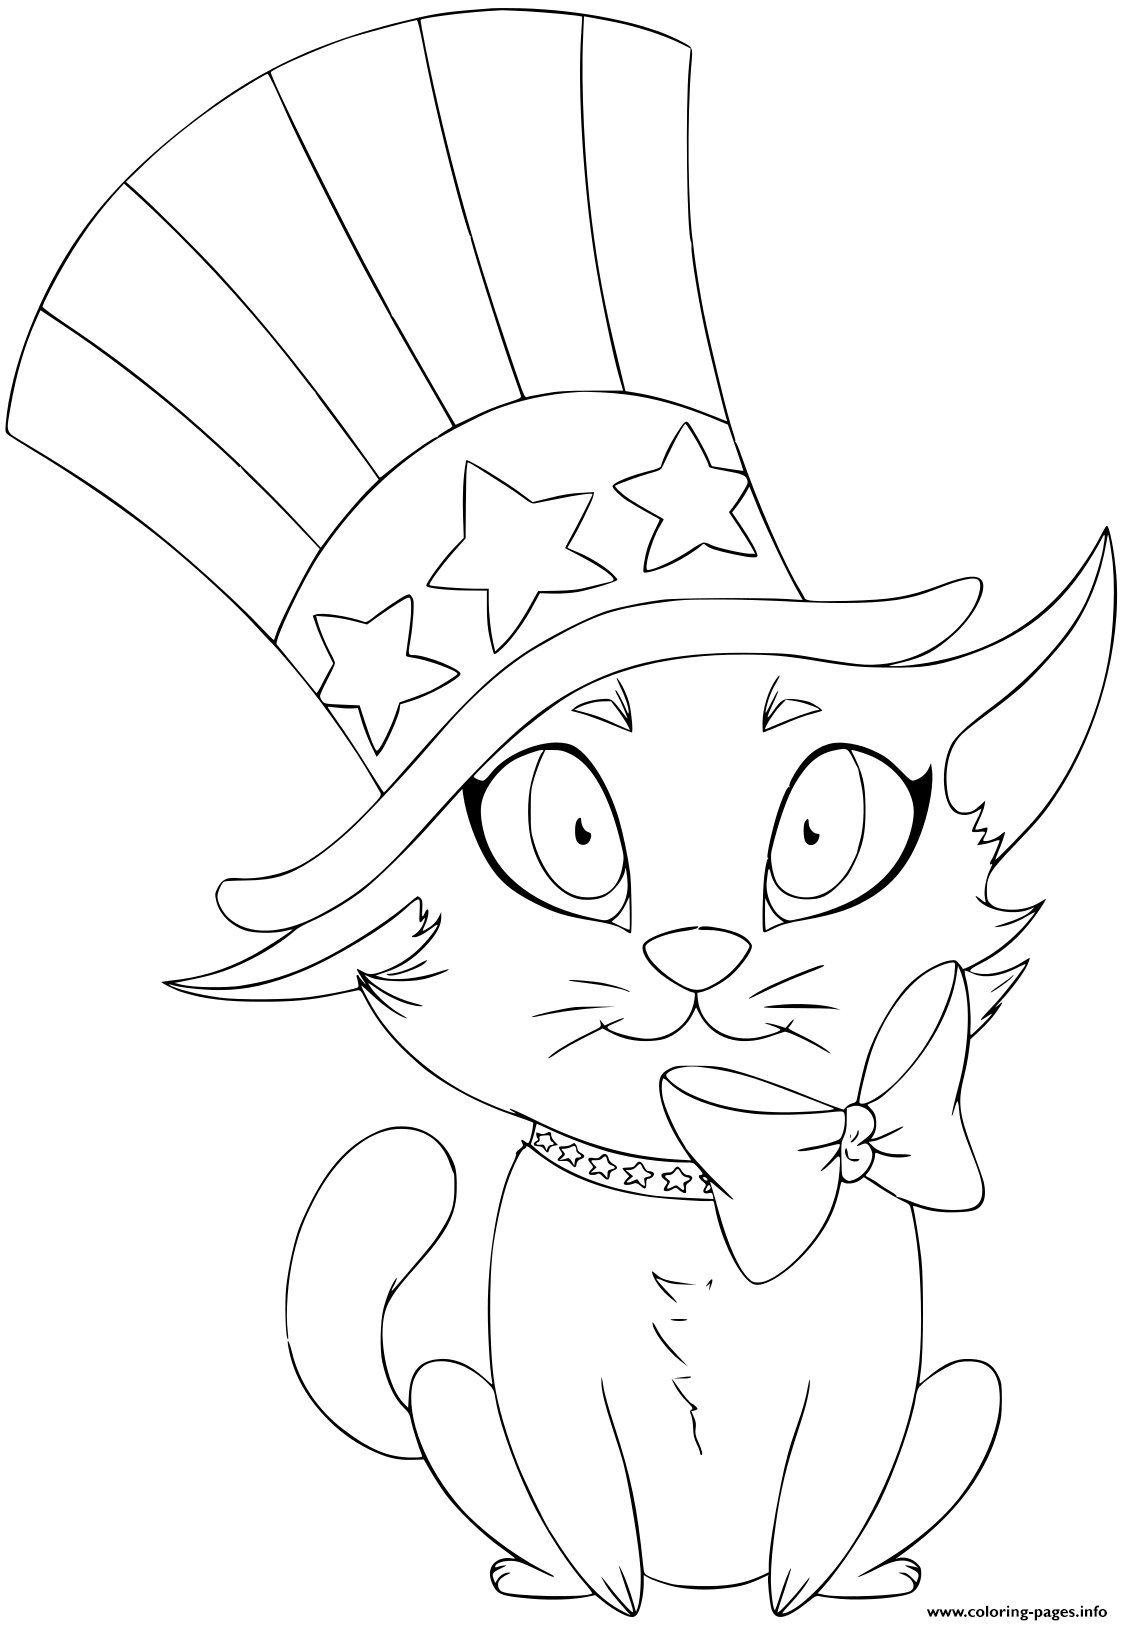 A Kitten Wearing A Hat And Bow Designed As The American Flag coloring pages